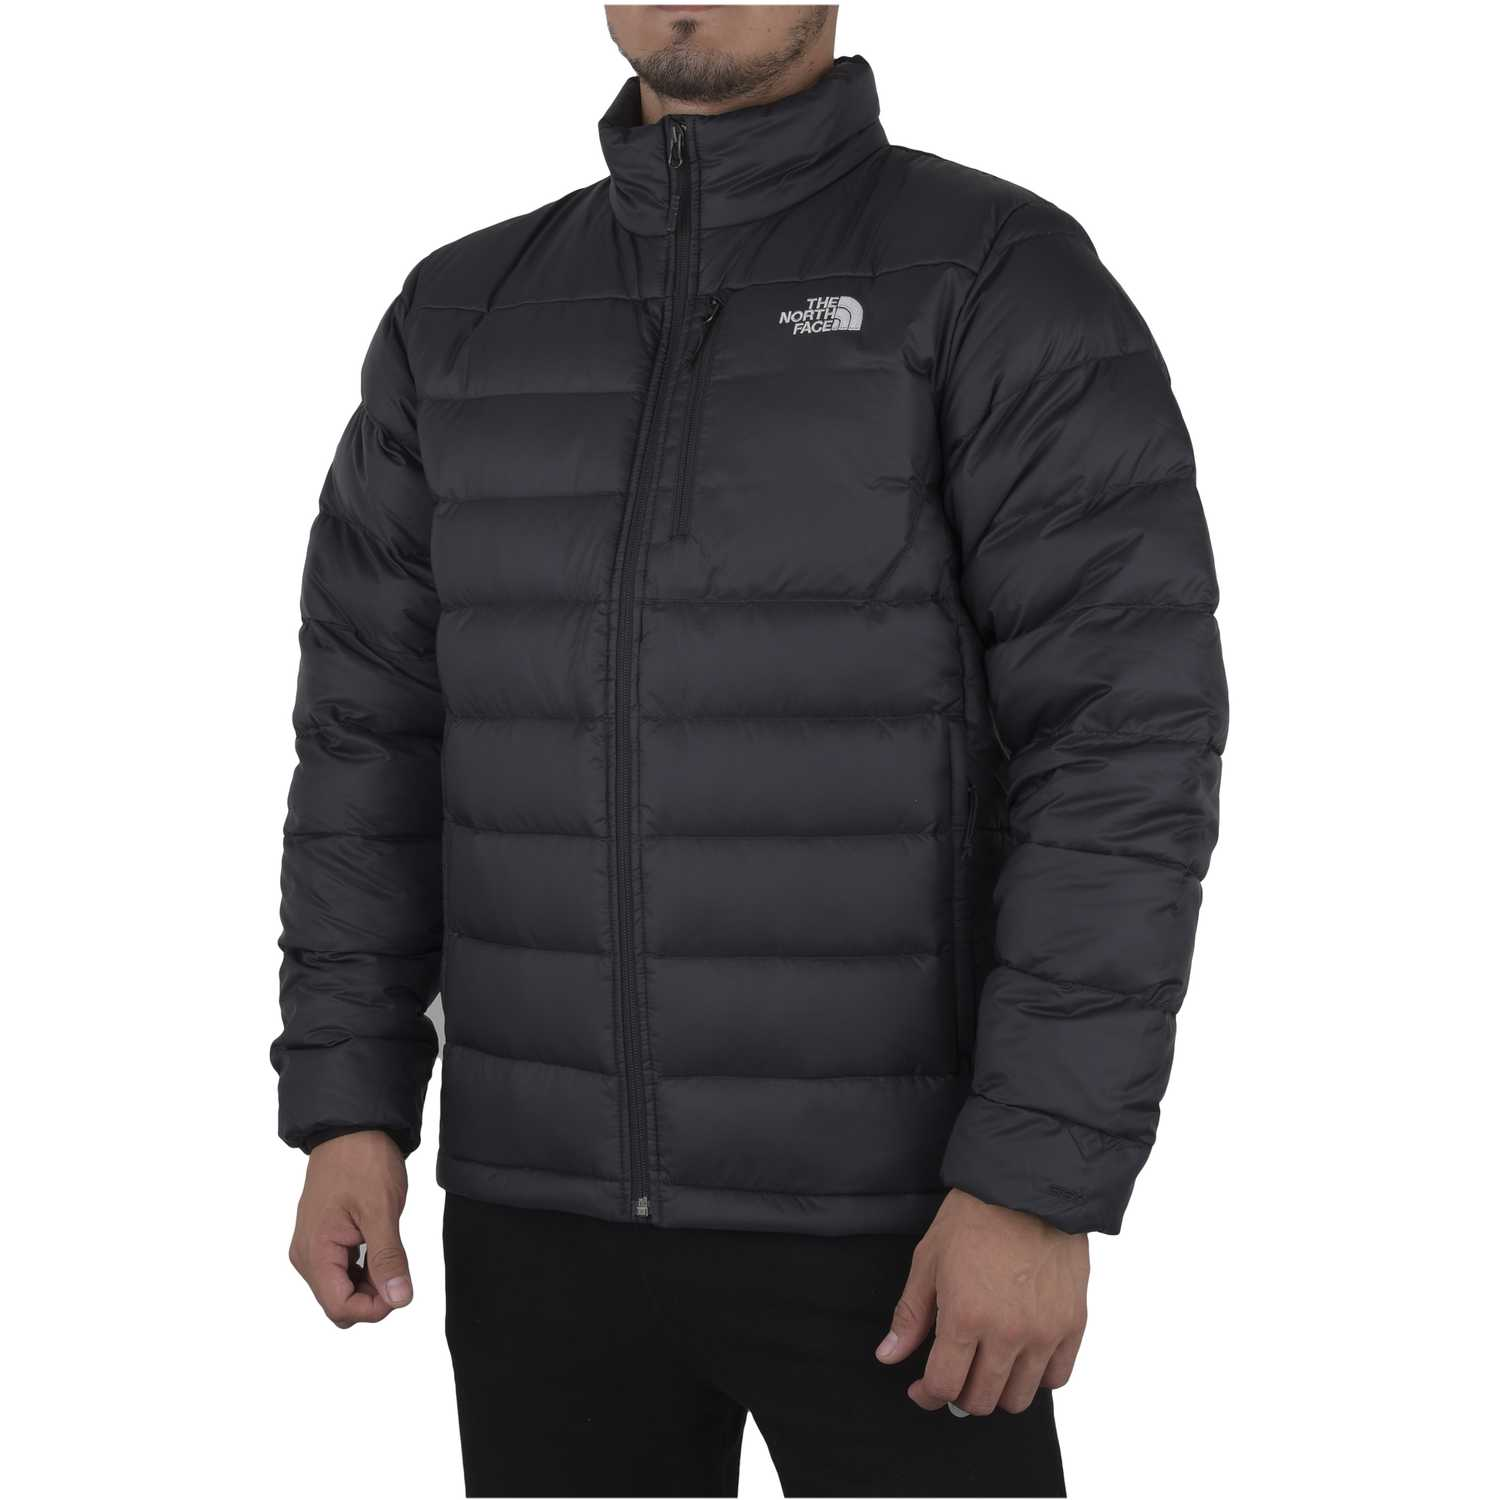 The North Face m aconcagua jacket Negro Plumas y alternos